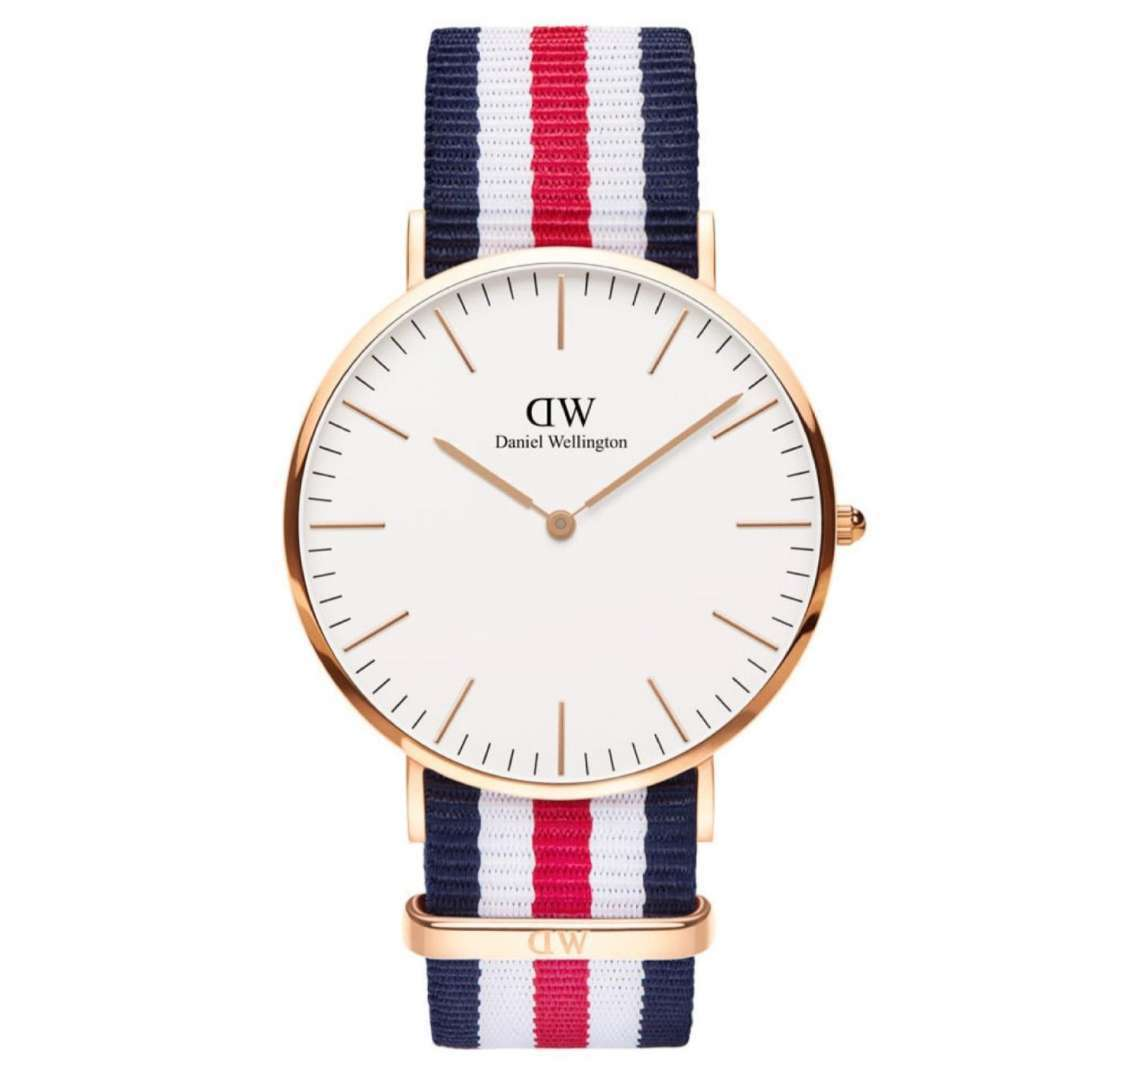 שעון יד אנלוגי daniel wellington dw00100002 דניאל וולינגטון